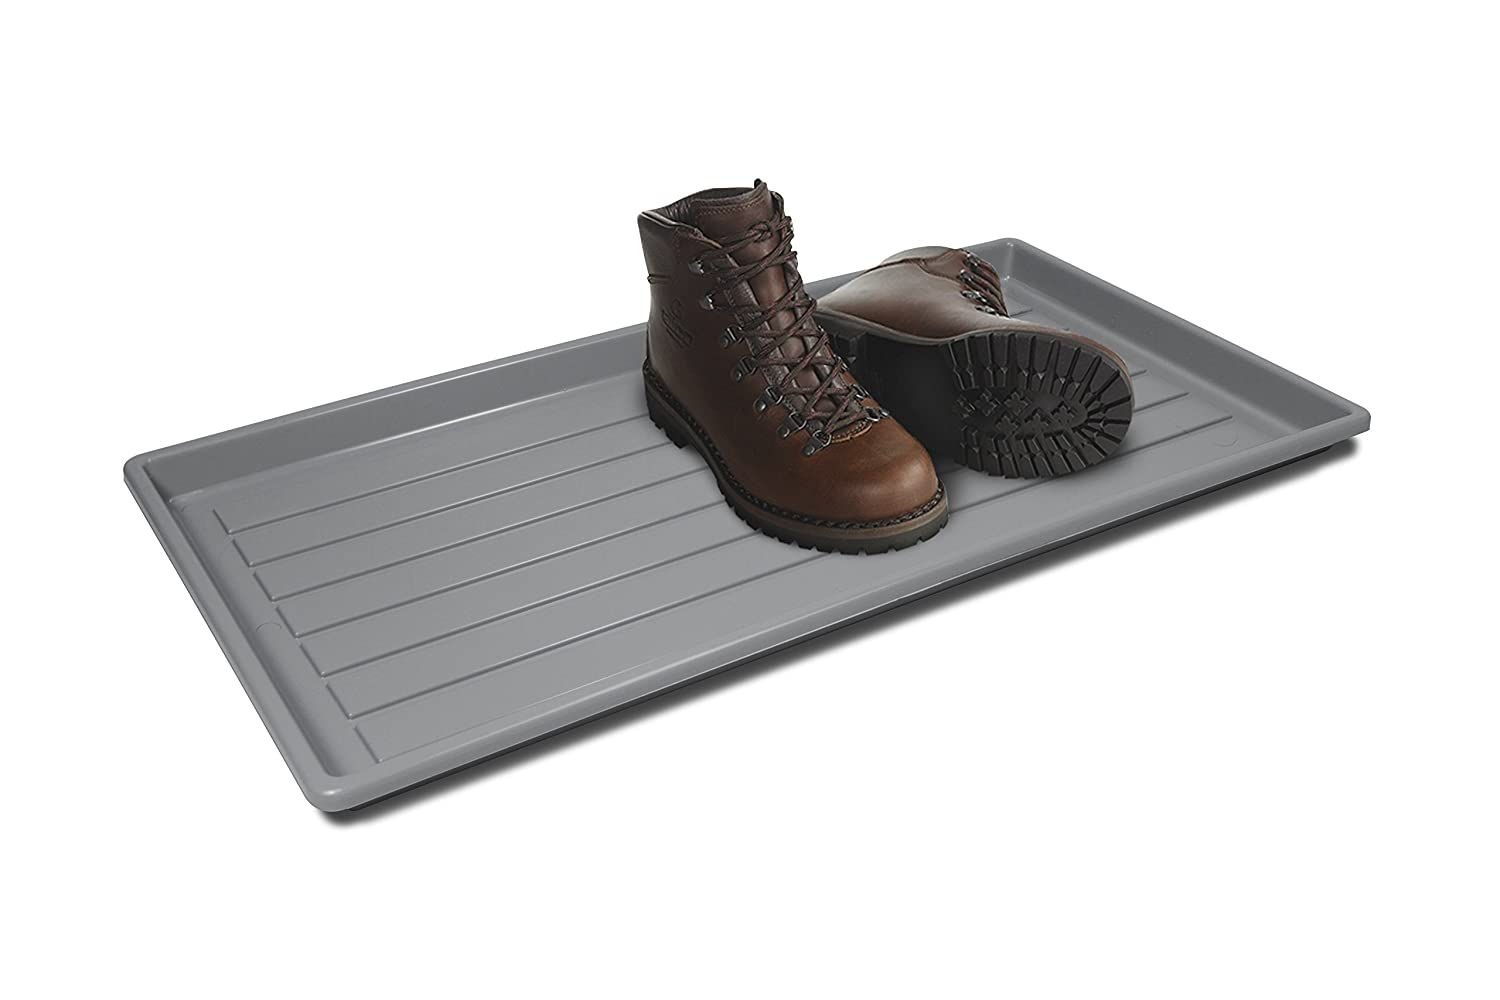 Storex Boot and Shoe Household Utility Tray, Black (00800U01C)